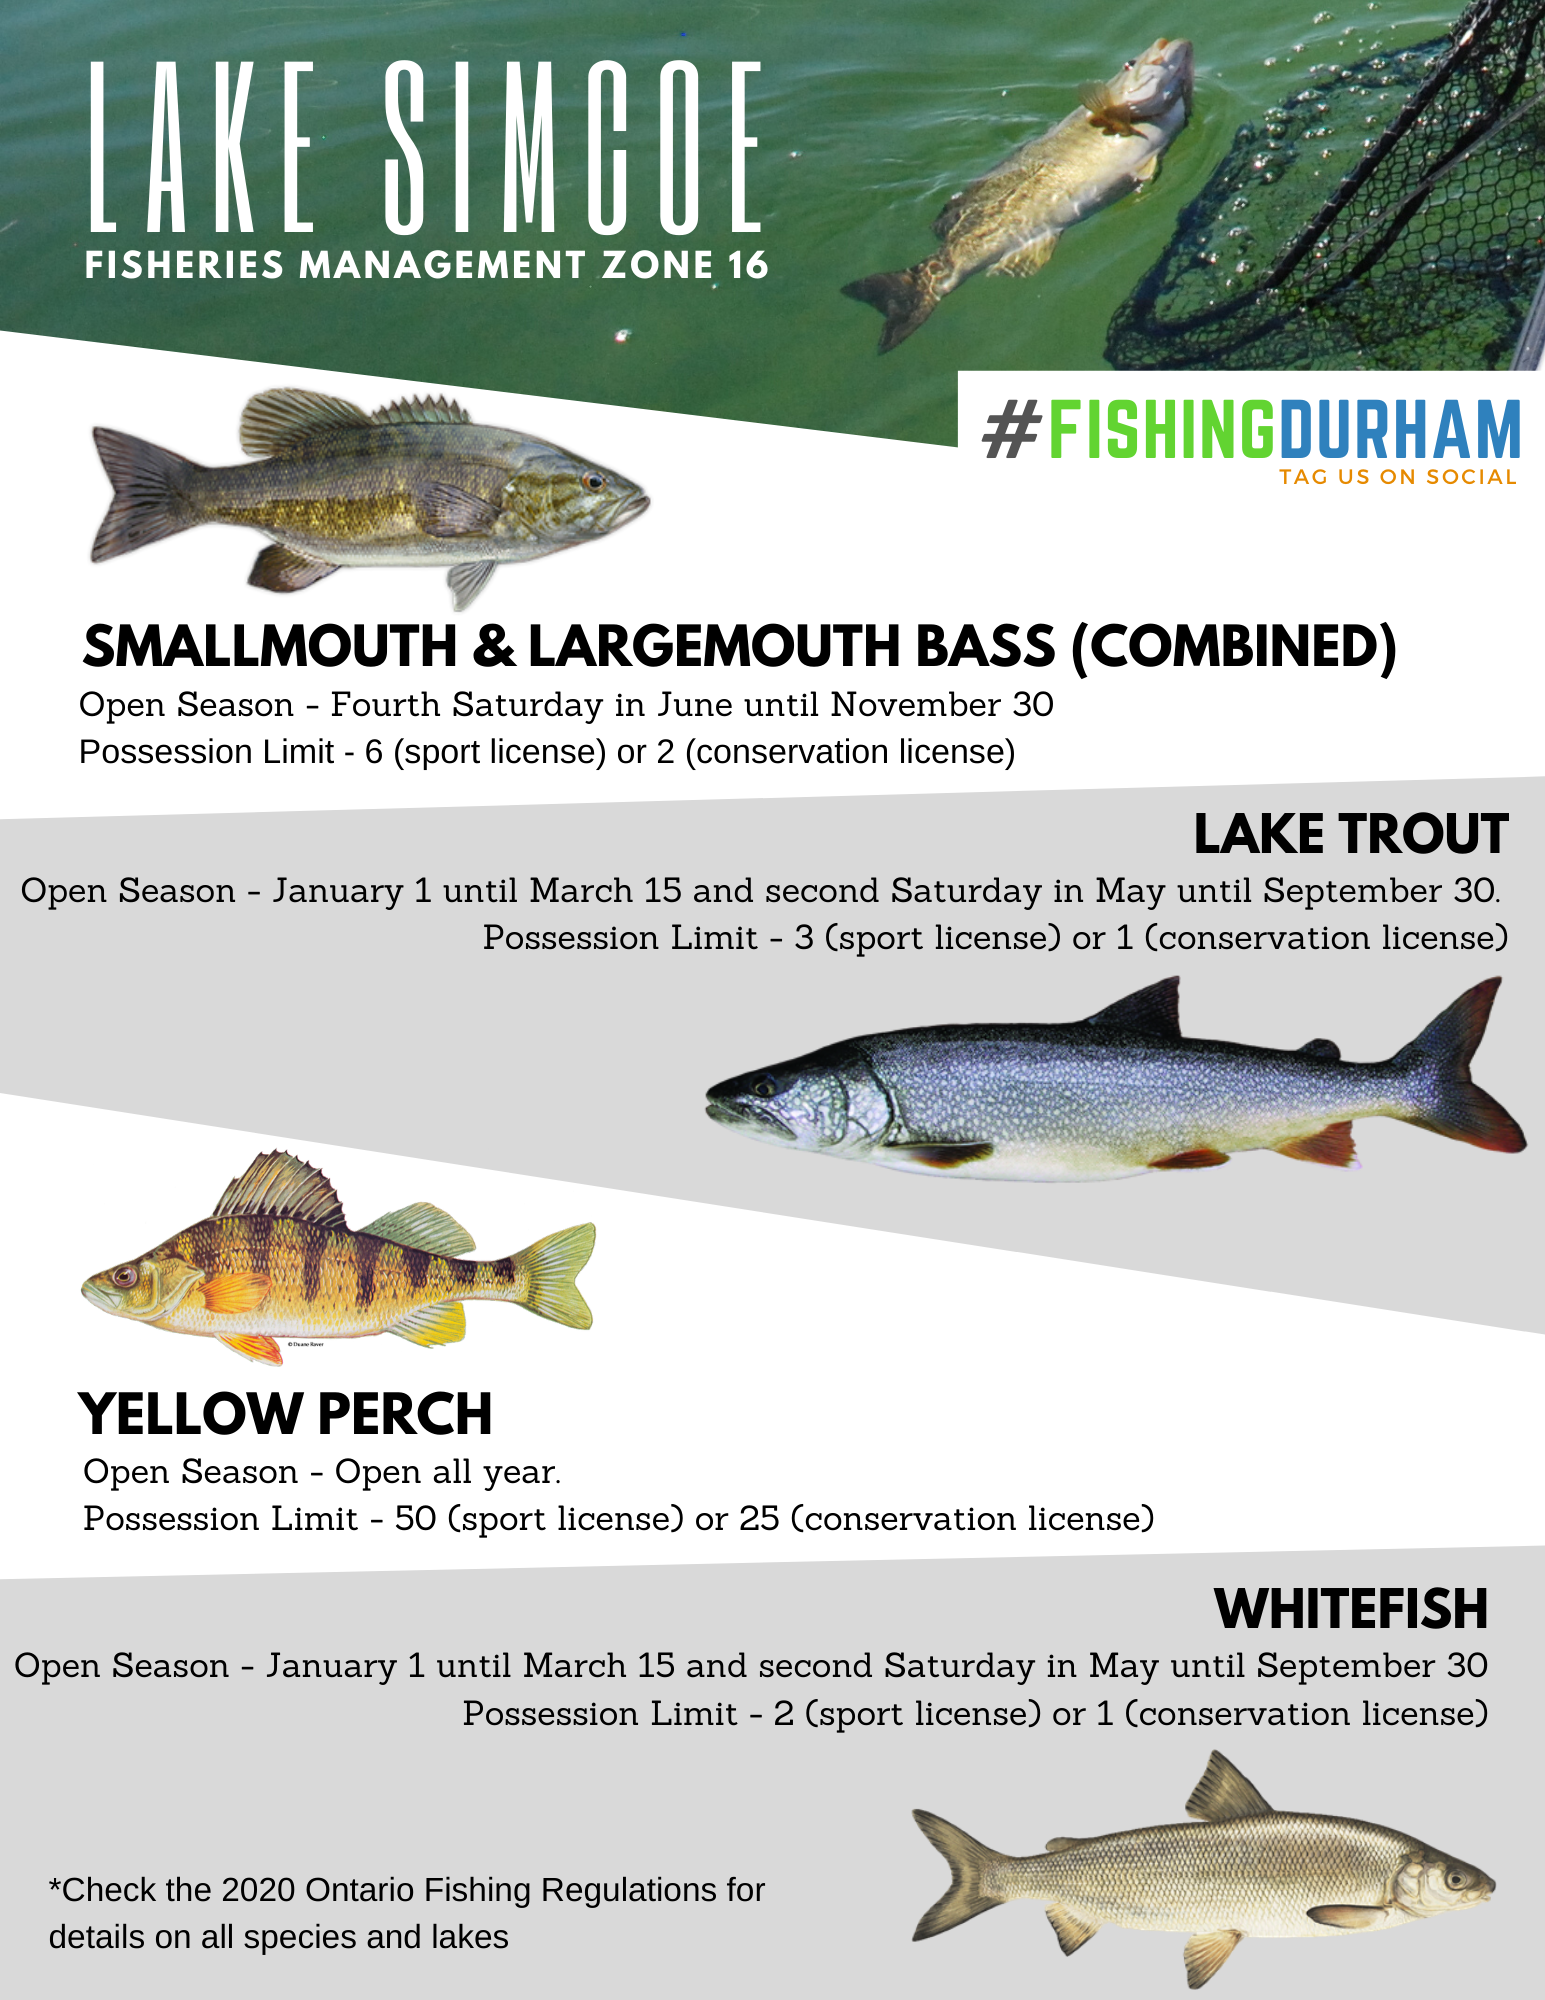 Lake Simcoe Species Information